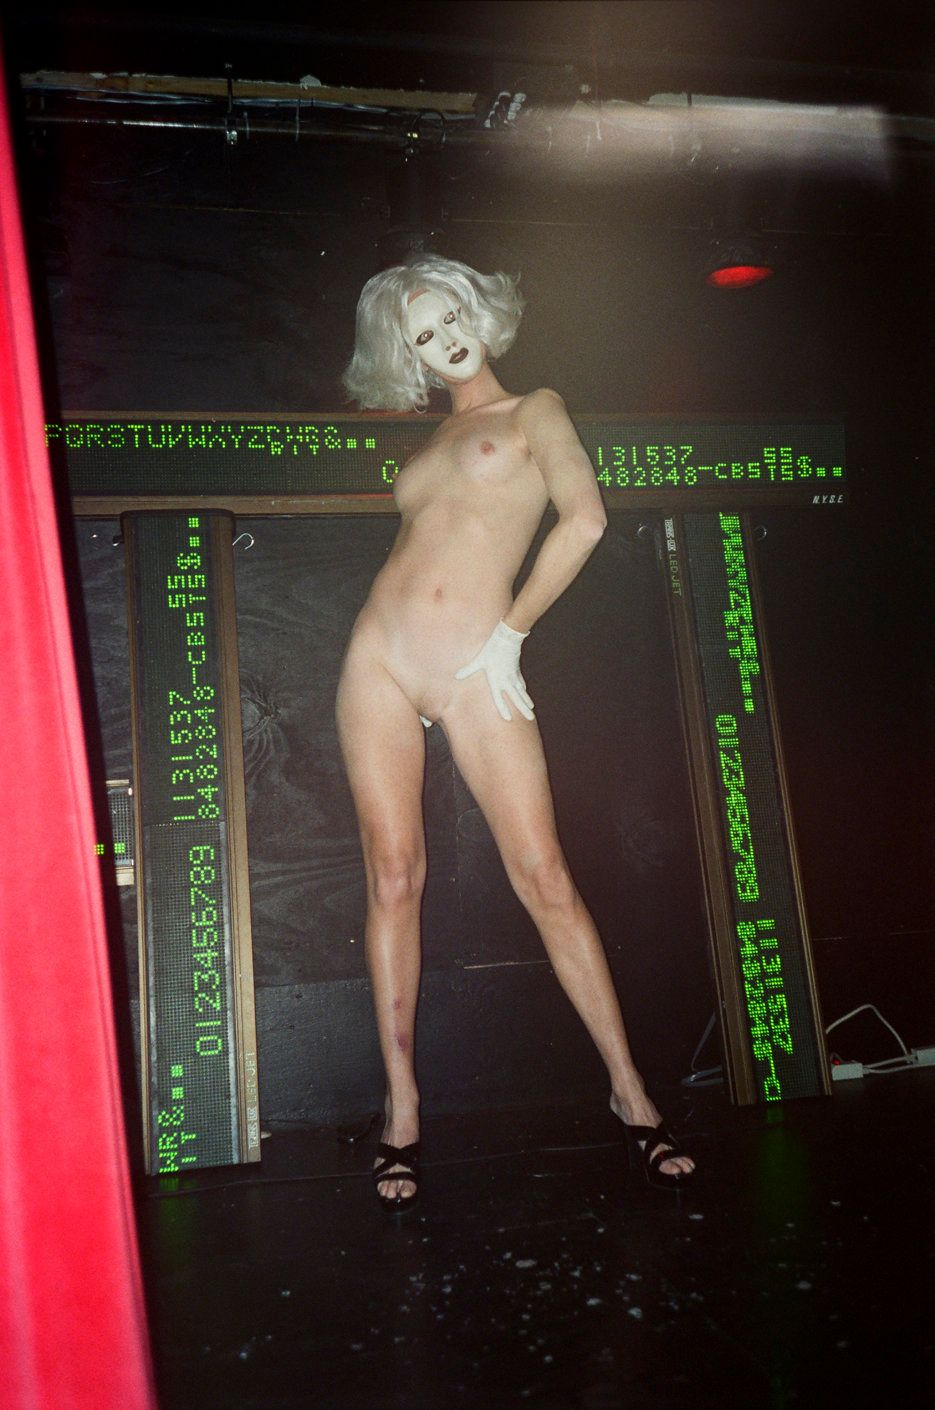 Performing at Mother nightclub. (November, 1996)